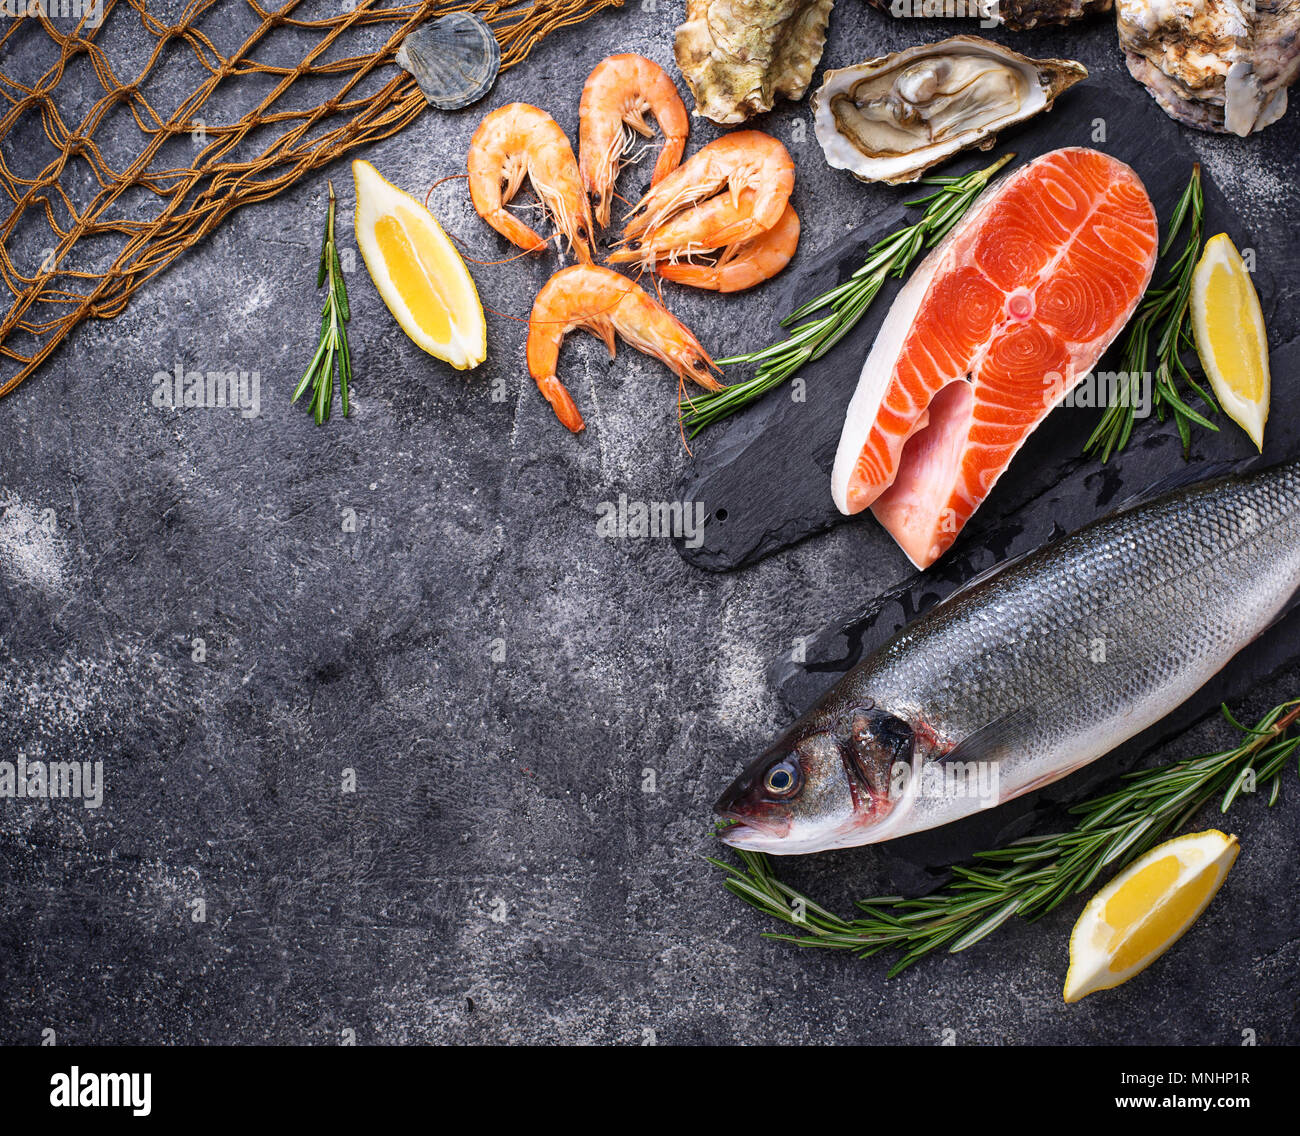 Salmon, seabass, shrimps and oysters - Stock Image